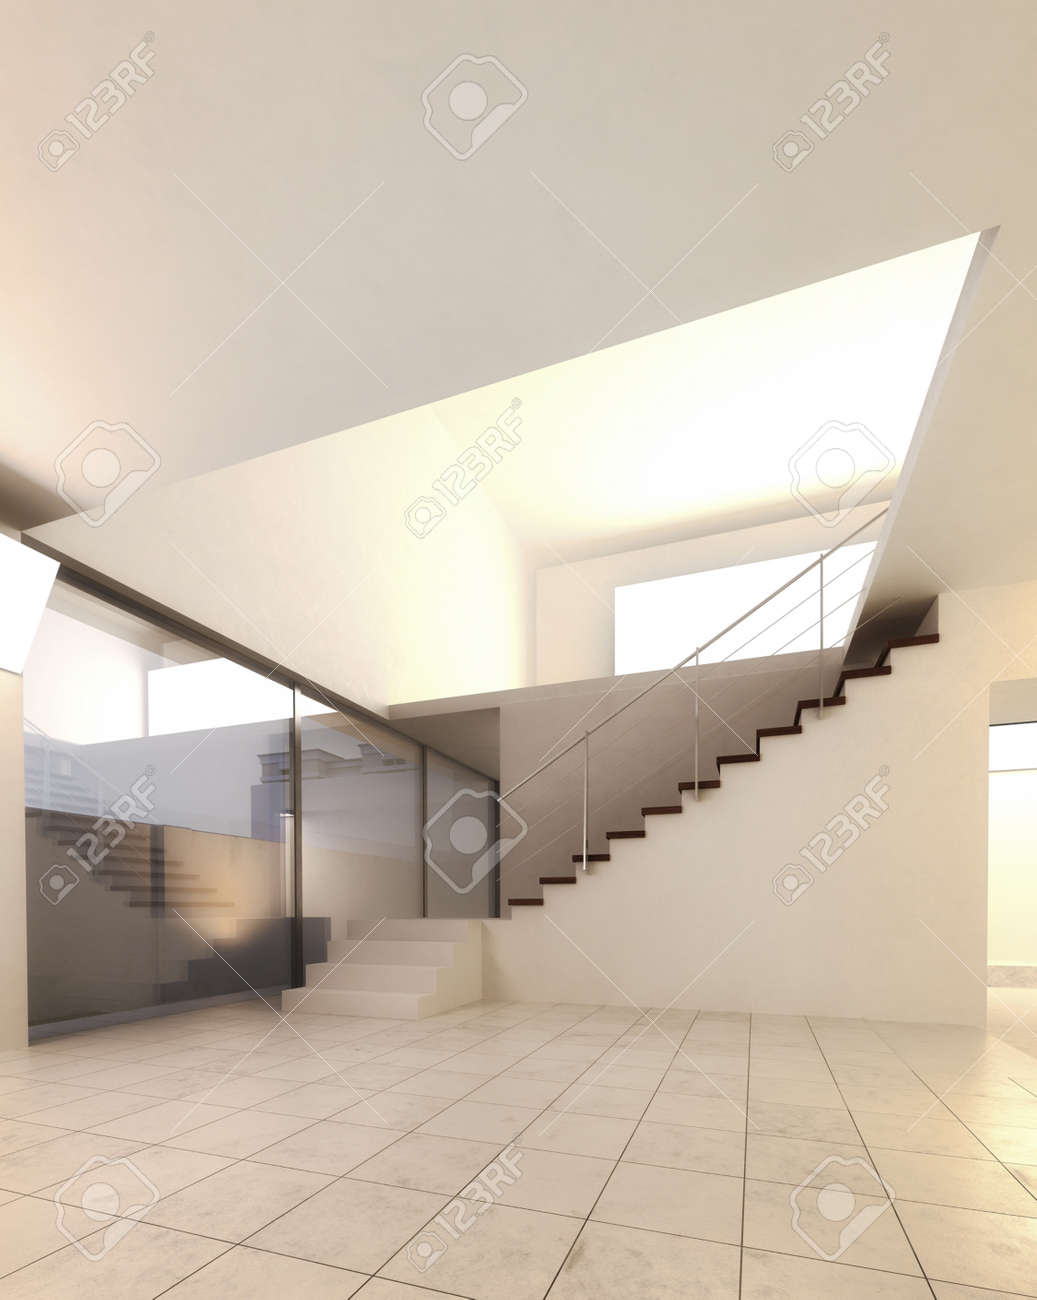 A 3d rendering of staircase in an empty hall Stock Photo - 20217916